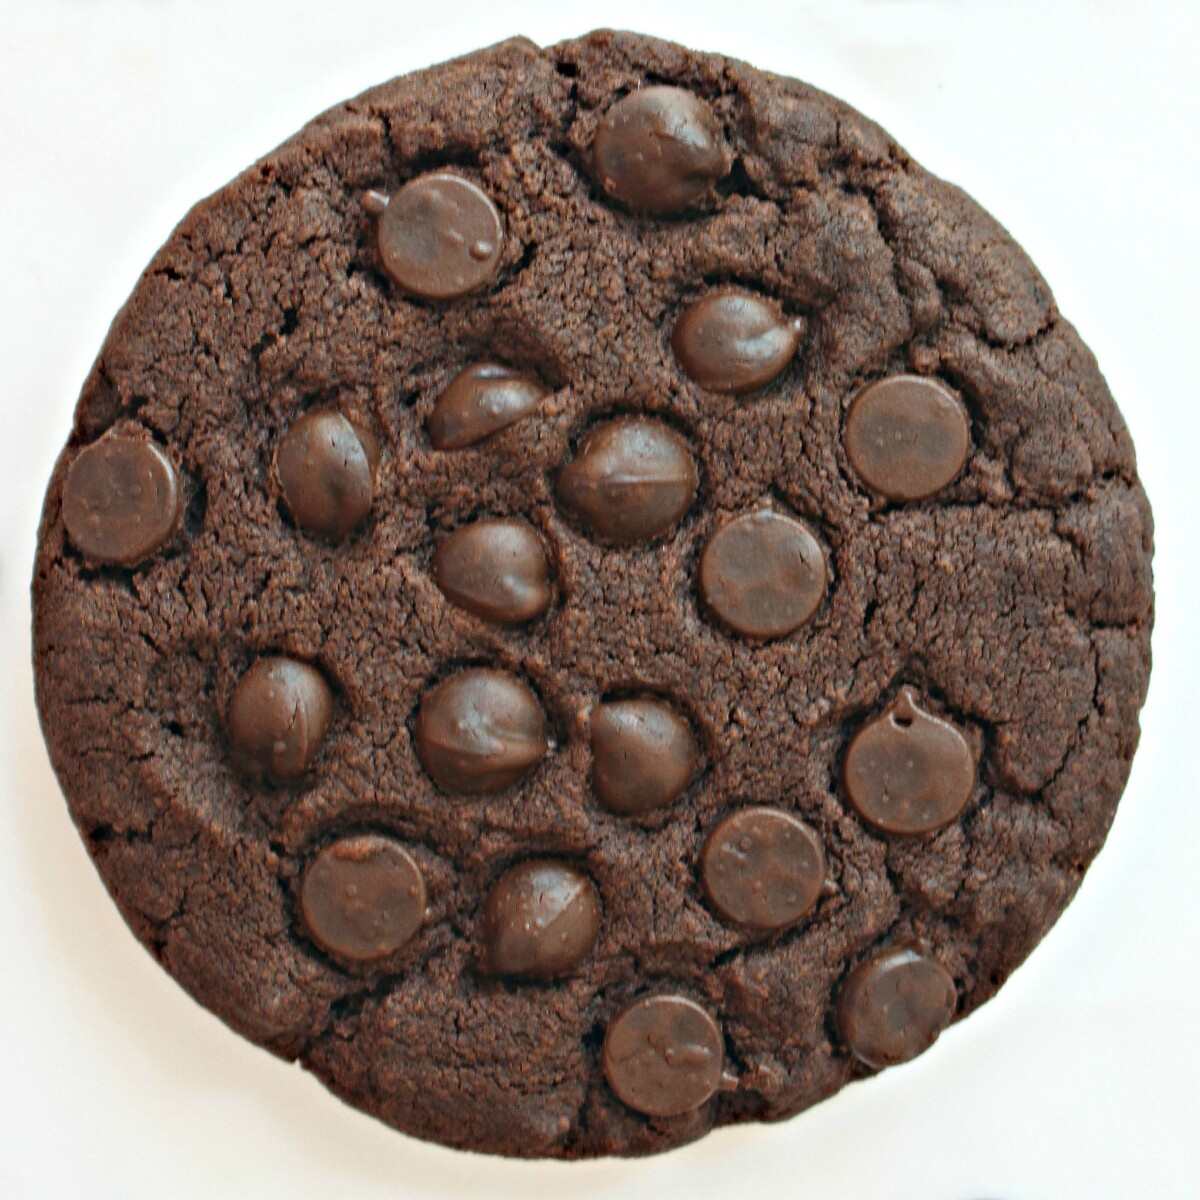 Closeup of a chocolate cookie with chocolate chips pressed into the top.